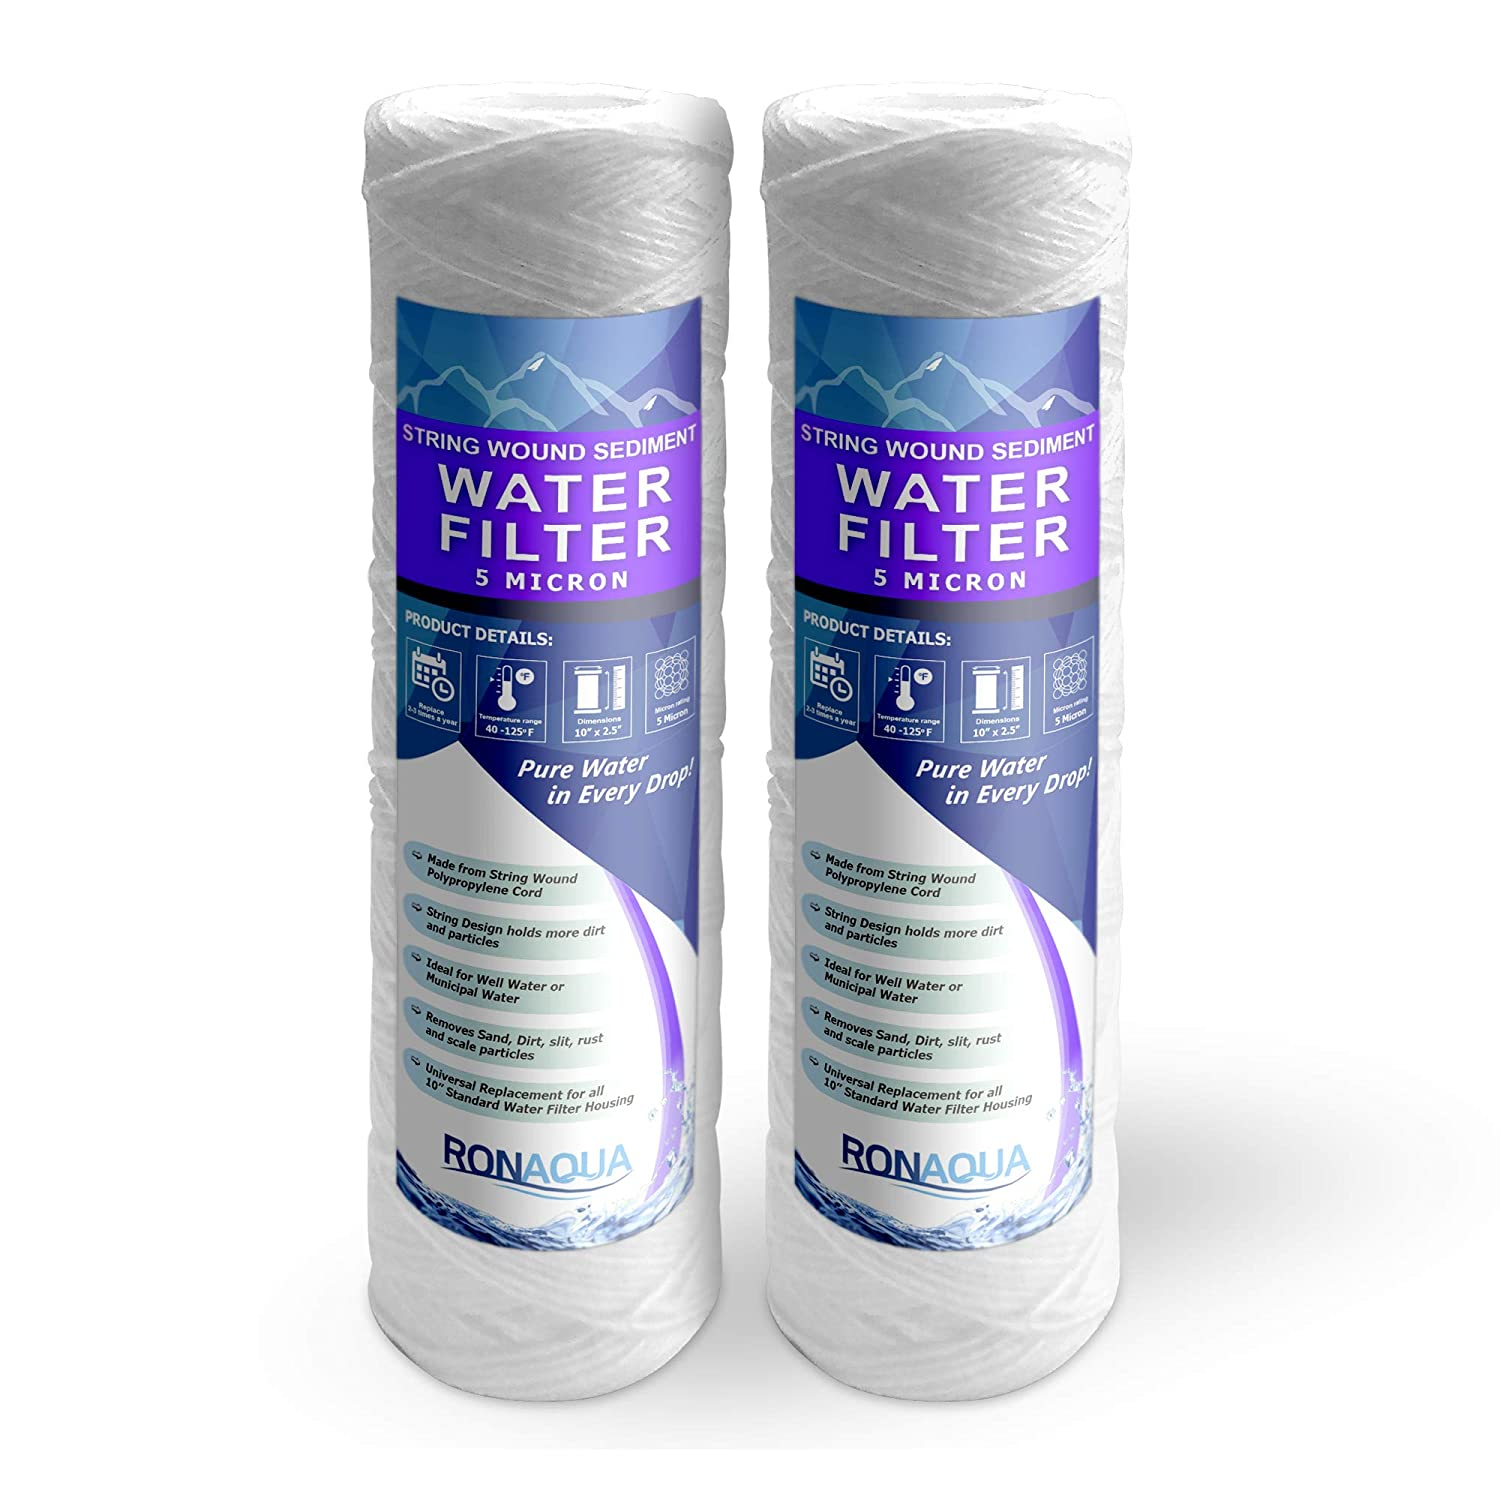 Ronaqua Wound String 5 Micron Sediment Water Filter Cartridge 10 Inc. x 2.5 Inc, Four Layers of Filtration, Removes Sand, Dirt, Silt, Rust, Made from Polypropylene (2 Pack)